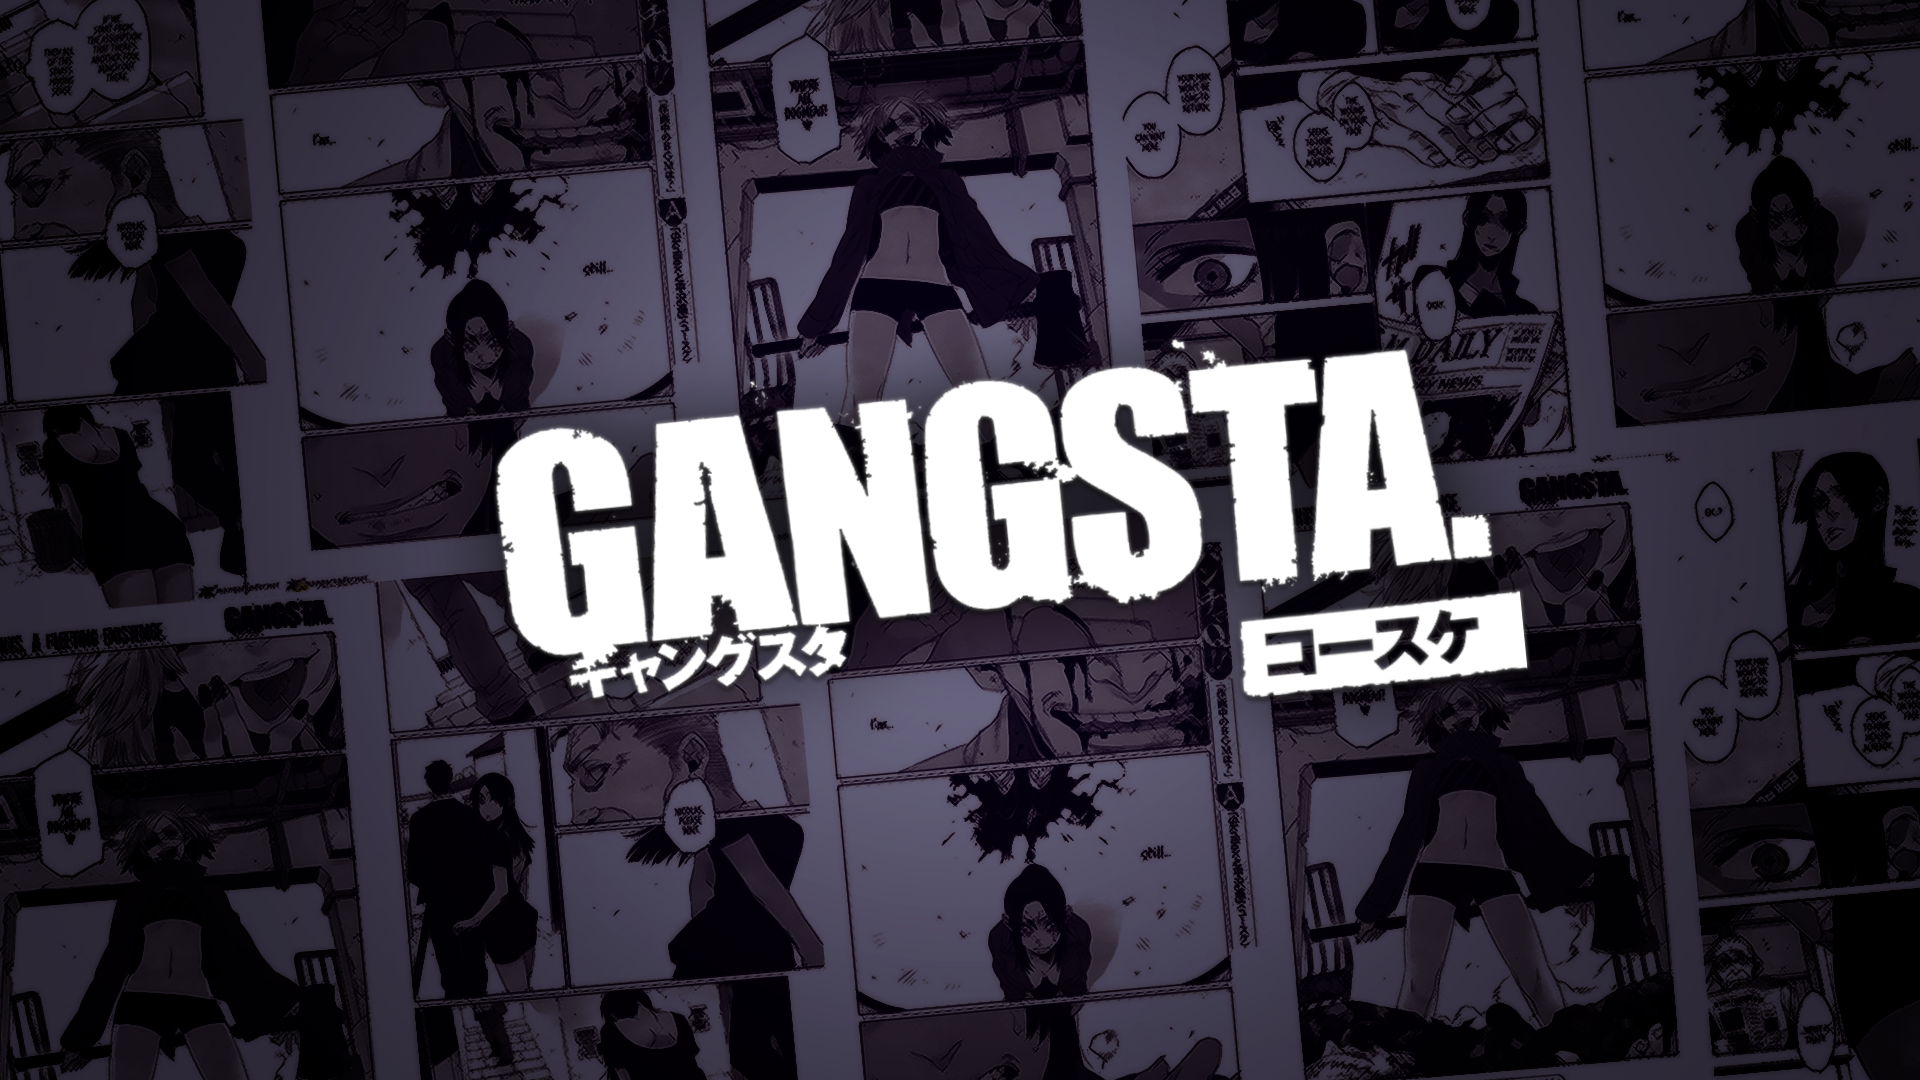 Photo collection gangsta wallpapers for desktop anime gangster wallpapers 4usky voltagebd Gallery